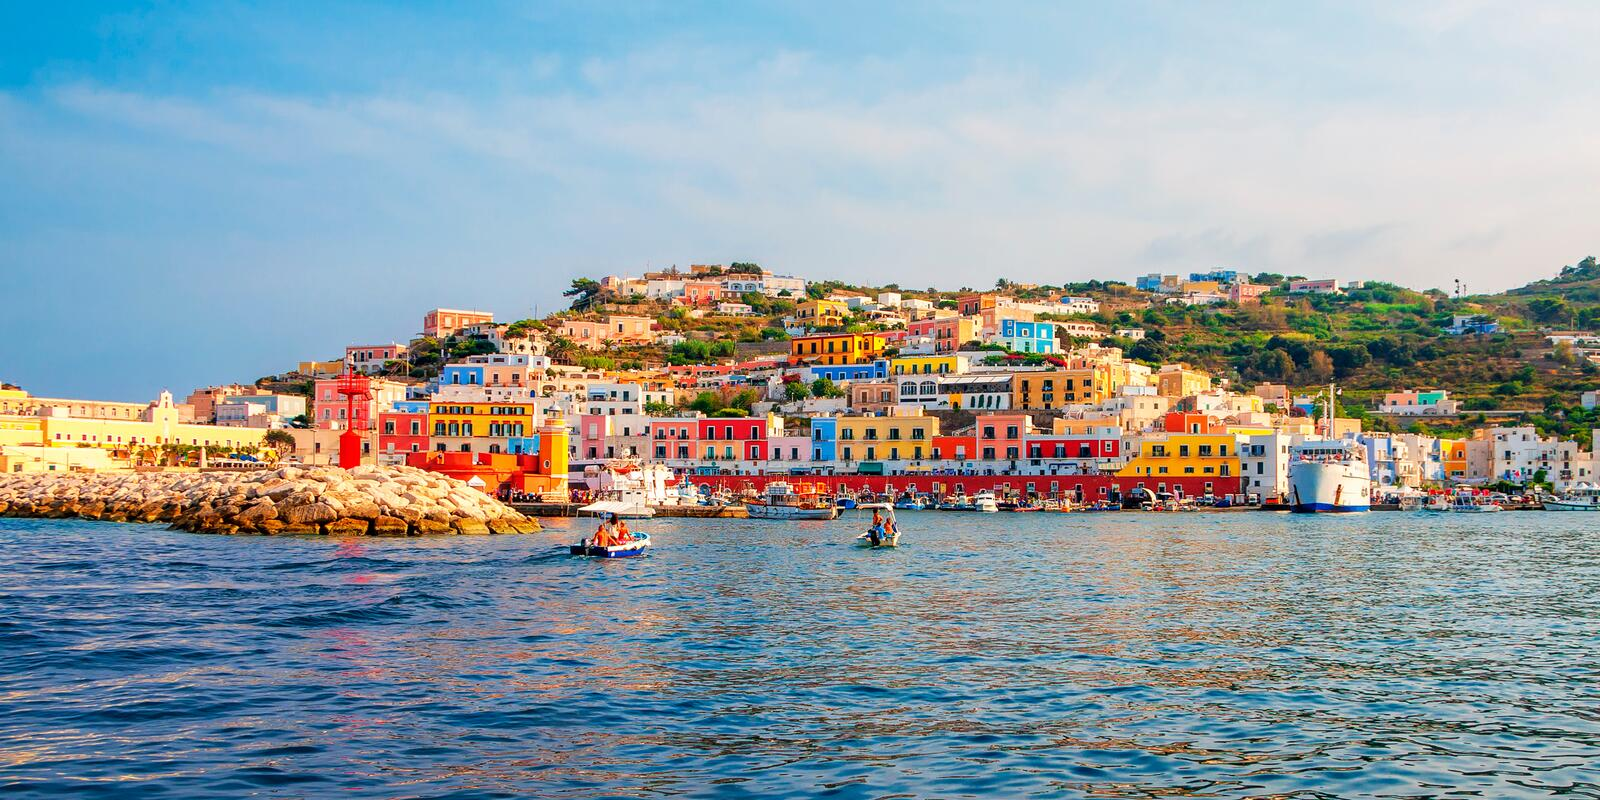 Week in the Pontine and Ischia islands